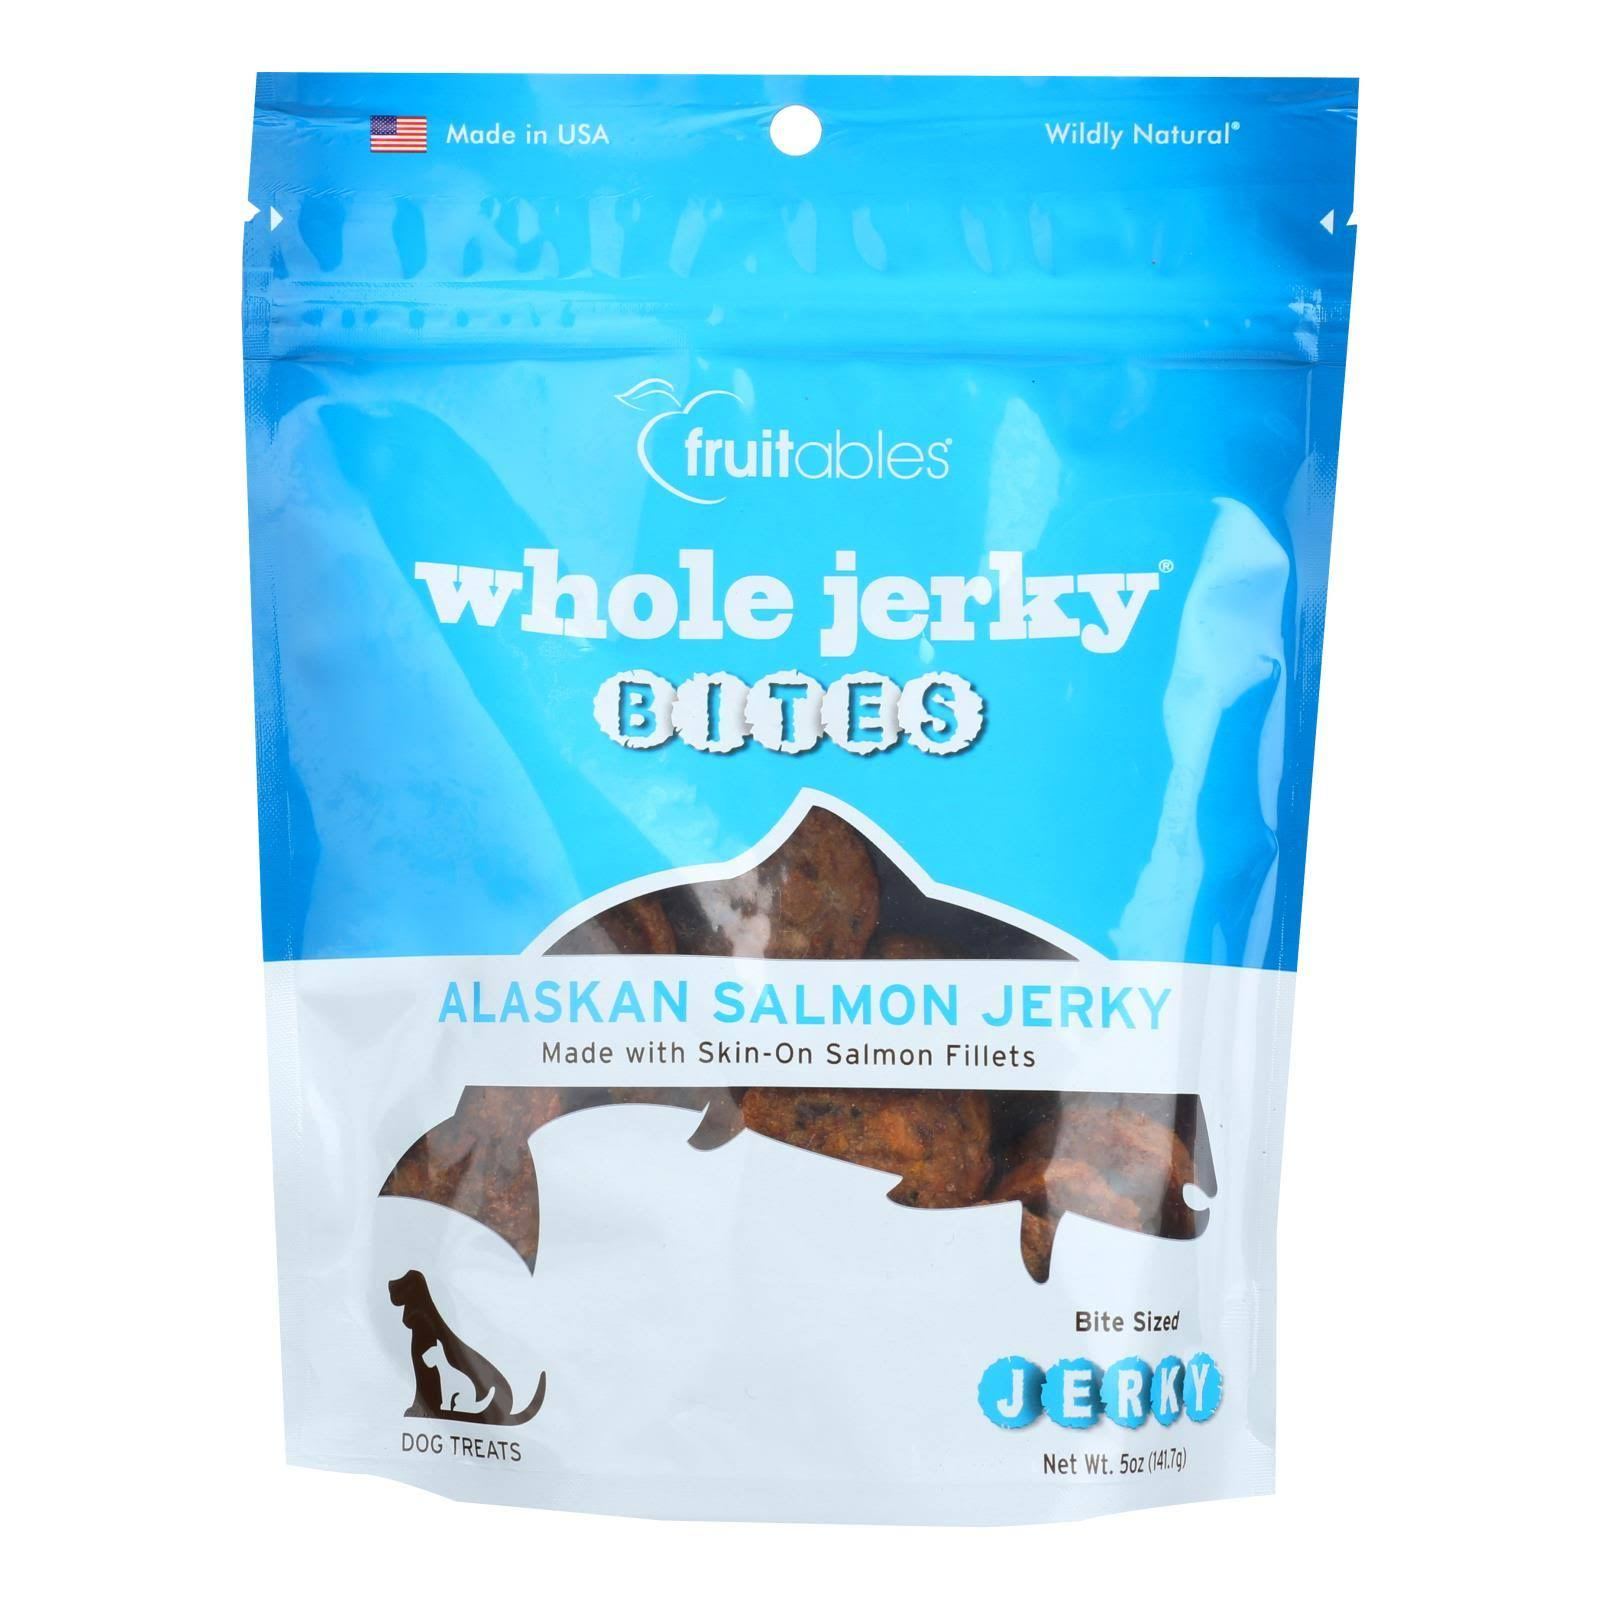 Fruitables Whole Jerky Bites Alaskan Salmon Dog Treats - 5 oz